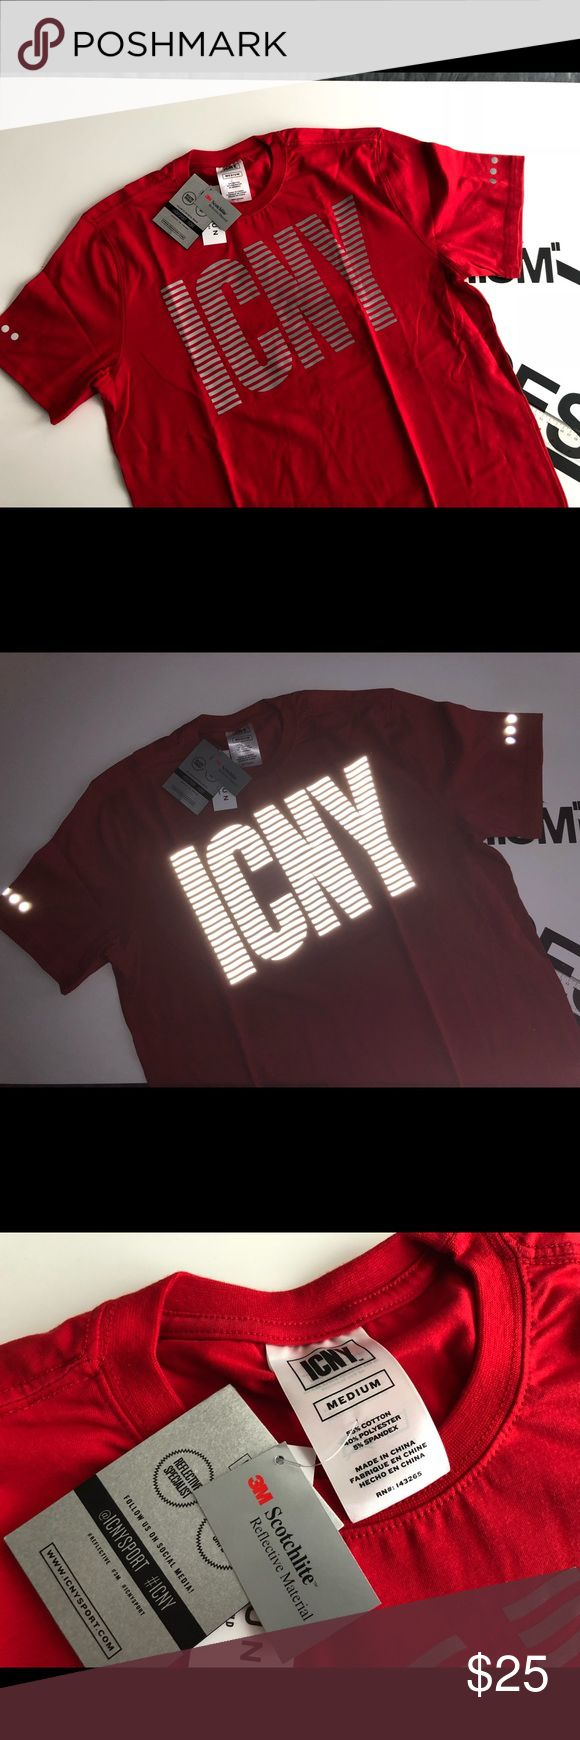 514 Best My Posh Closet Images On Pinterest Grips Men Baseline Tee Shirt Red Mens Icny 3m Reflective Logo T Pacsun